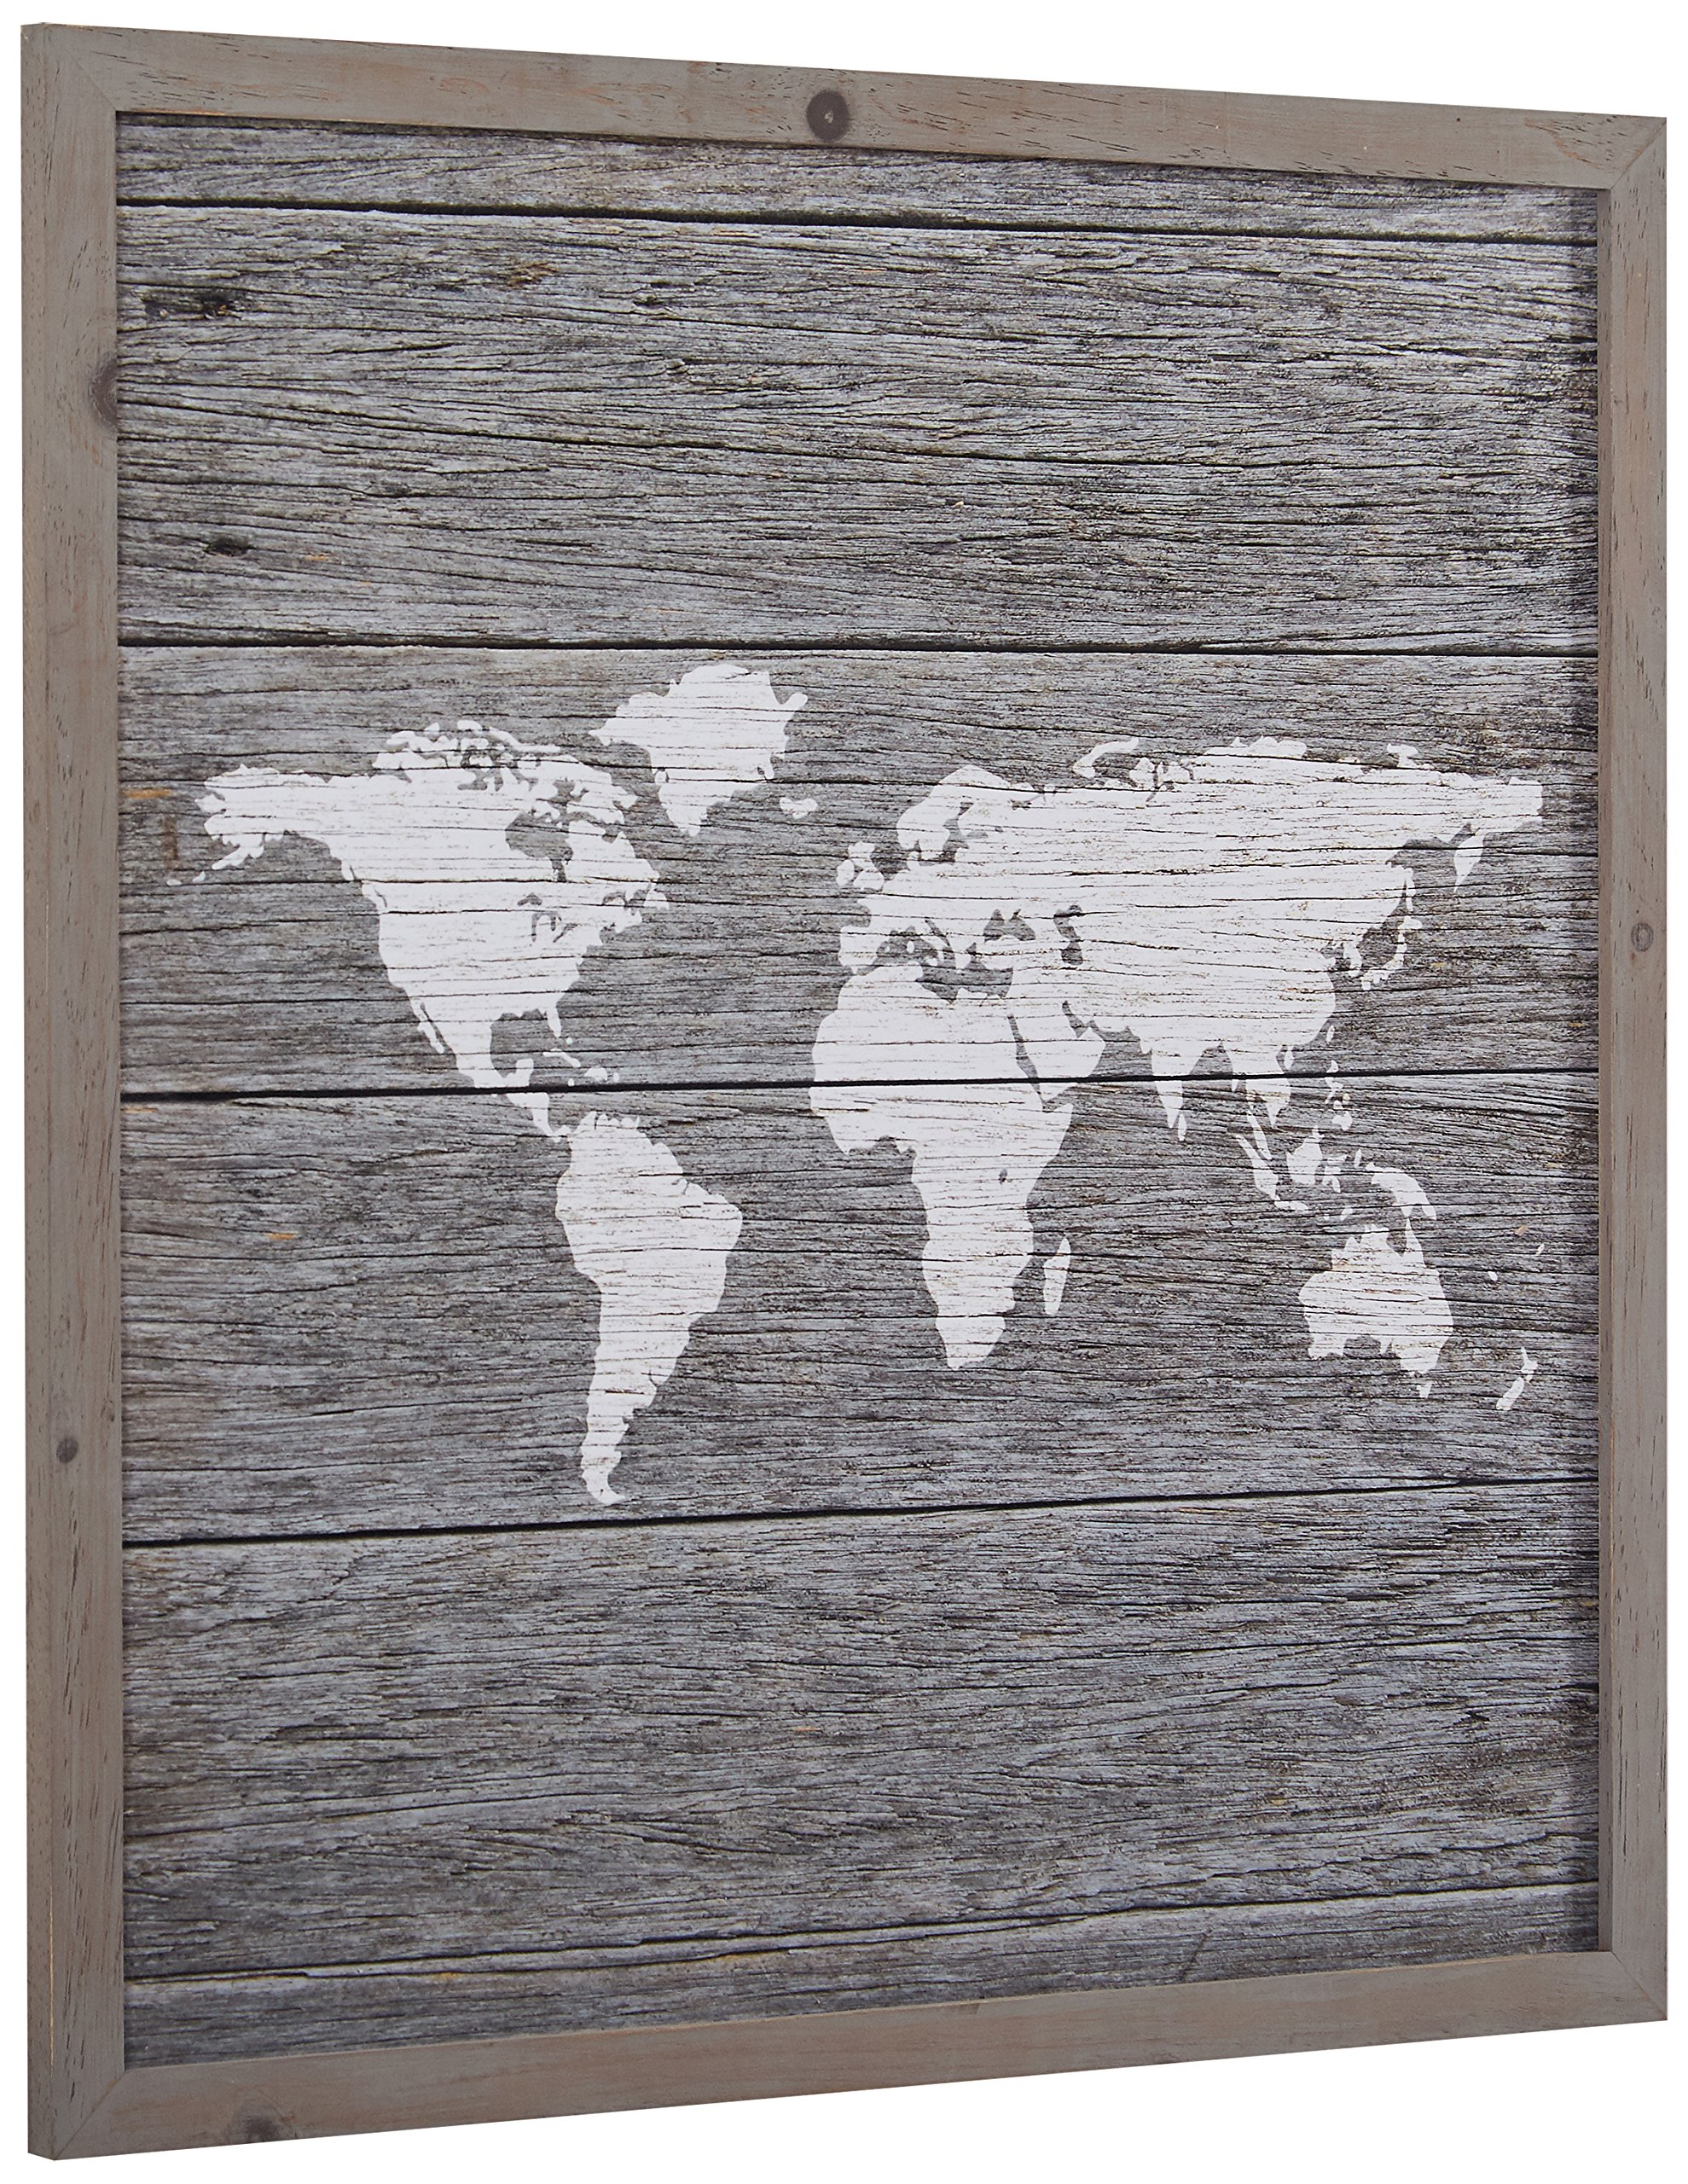 Global Map, Paper on Wood, Grey Wood Frame, 14'' x 14'' by Stone & Beam (Image #2)